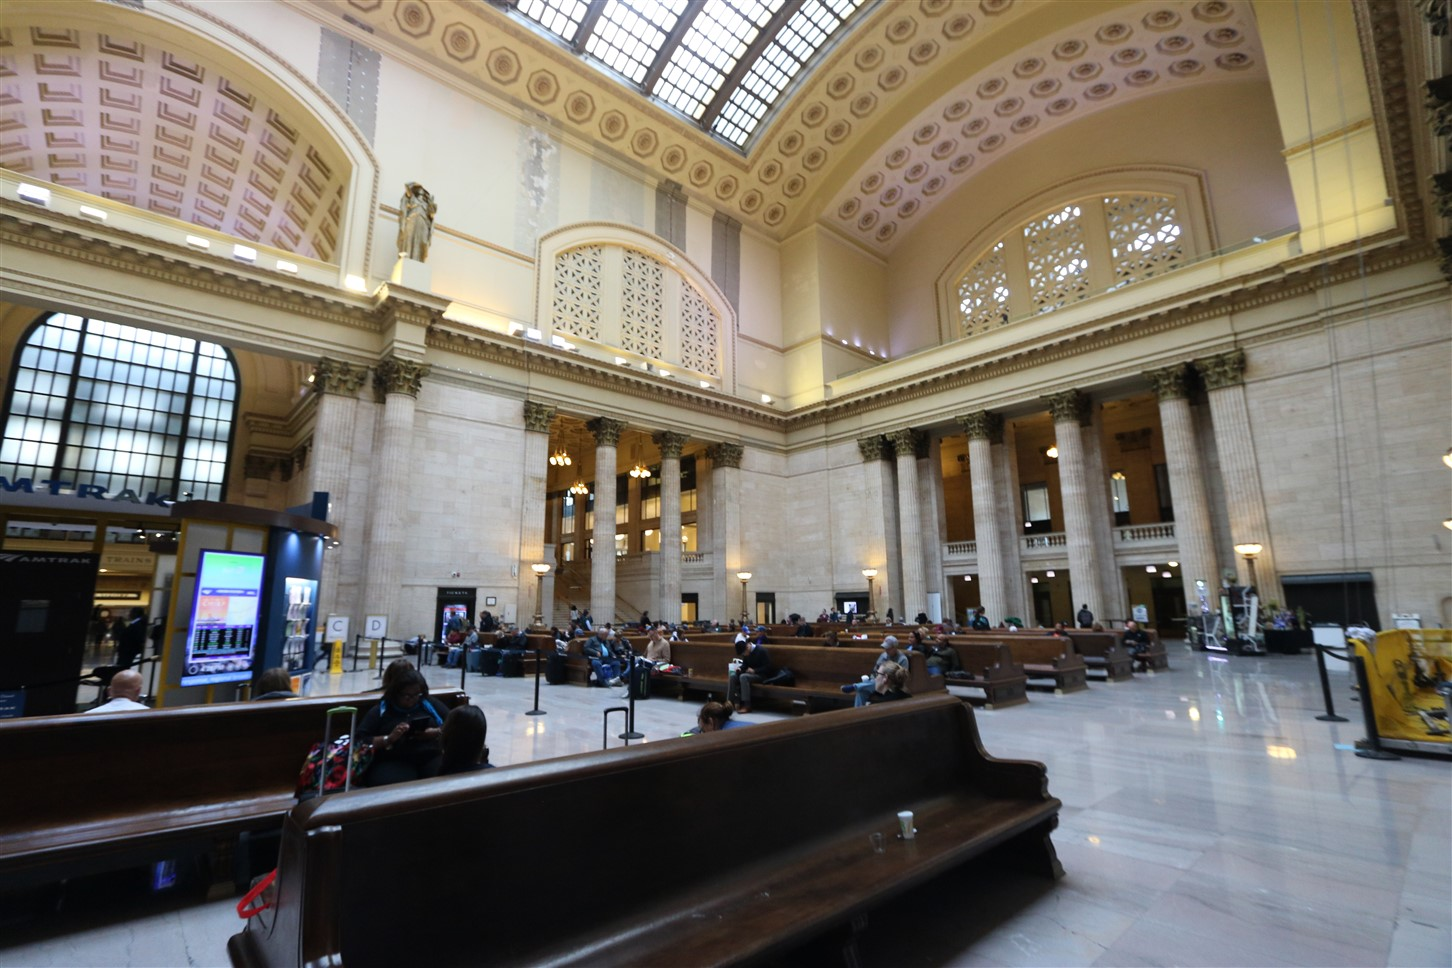 2017 10 15 401 Chicago Open House - Union Station.jpg